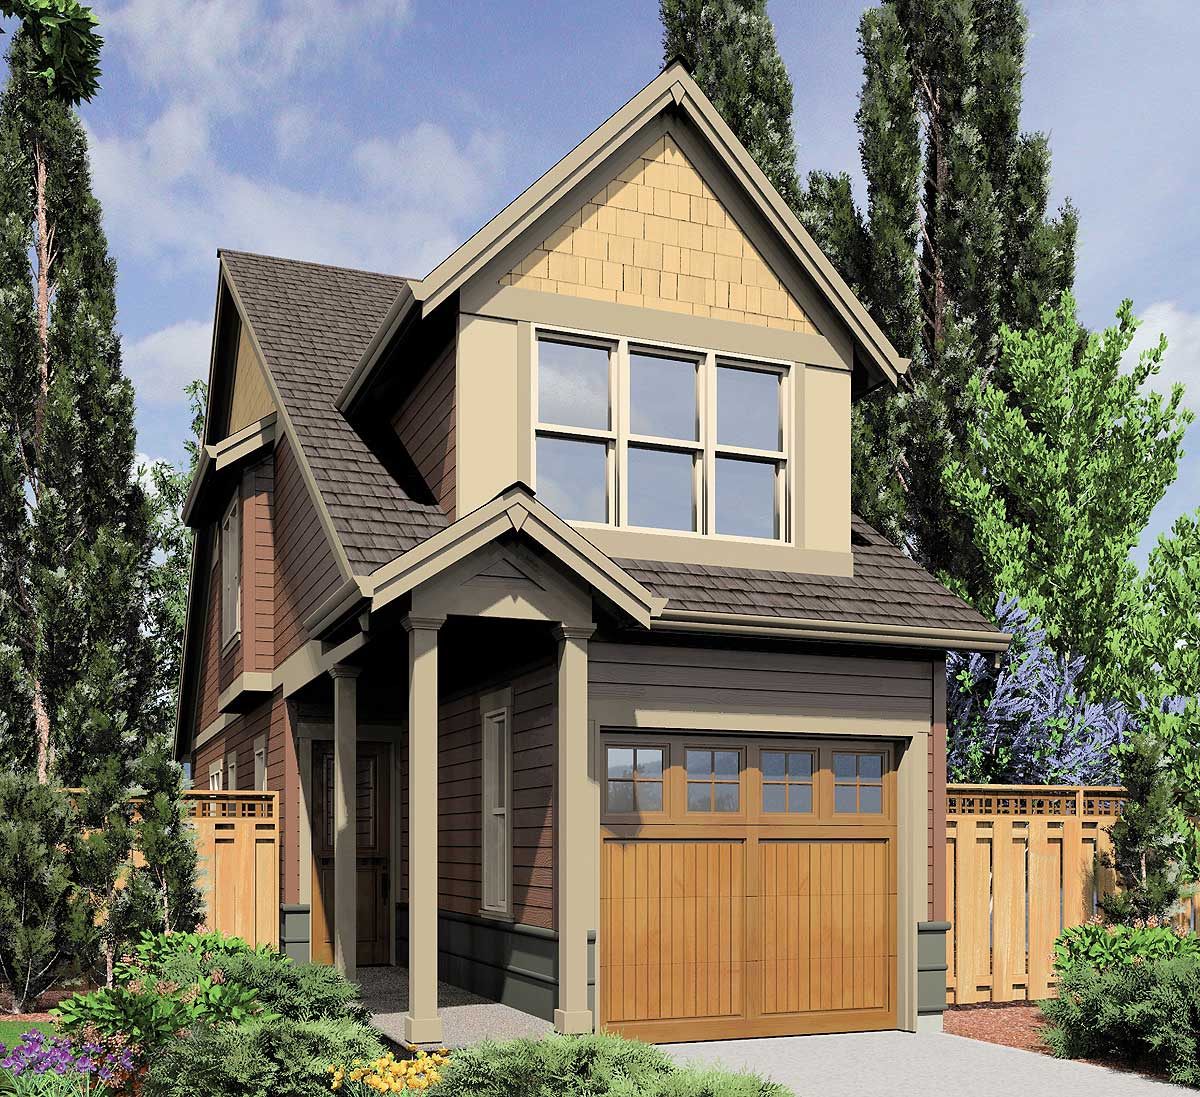 Home Garage Design Ideas: Sliver Of A Home Plan - 69574AM